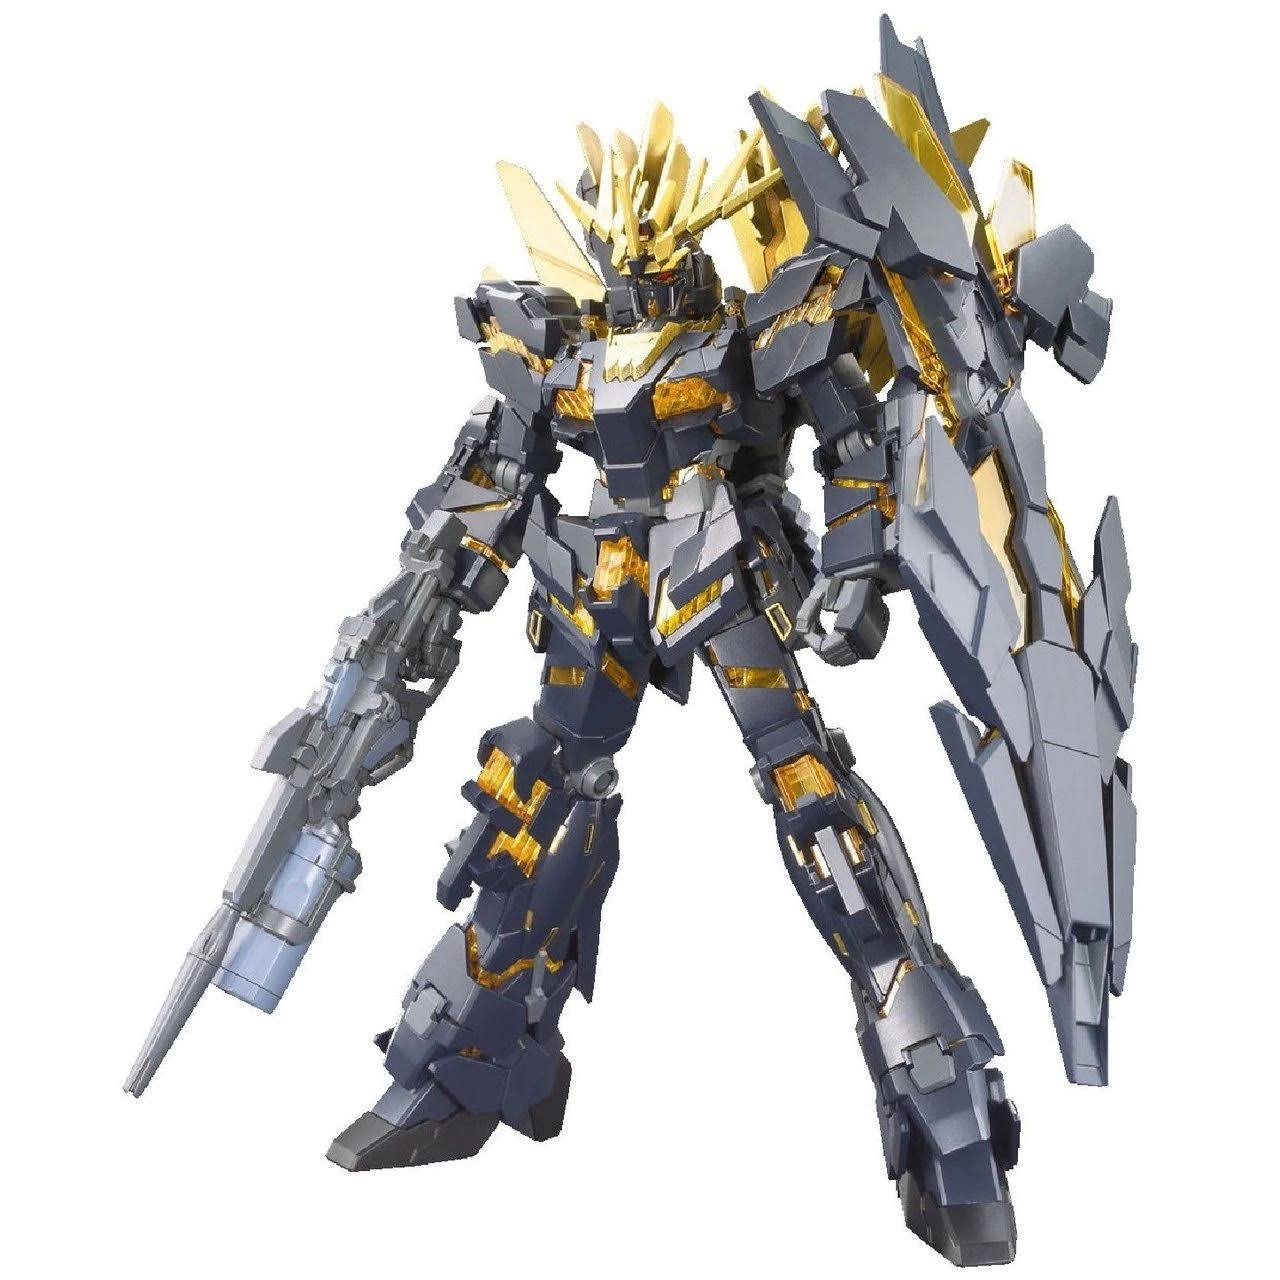 Bandai 02 Banshee Norn Unicorn Gundam Model Kit